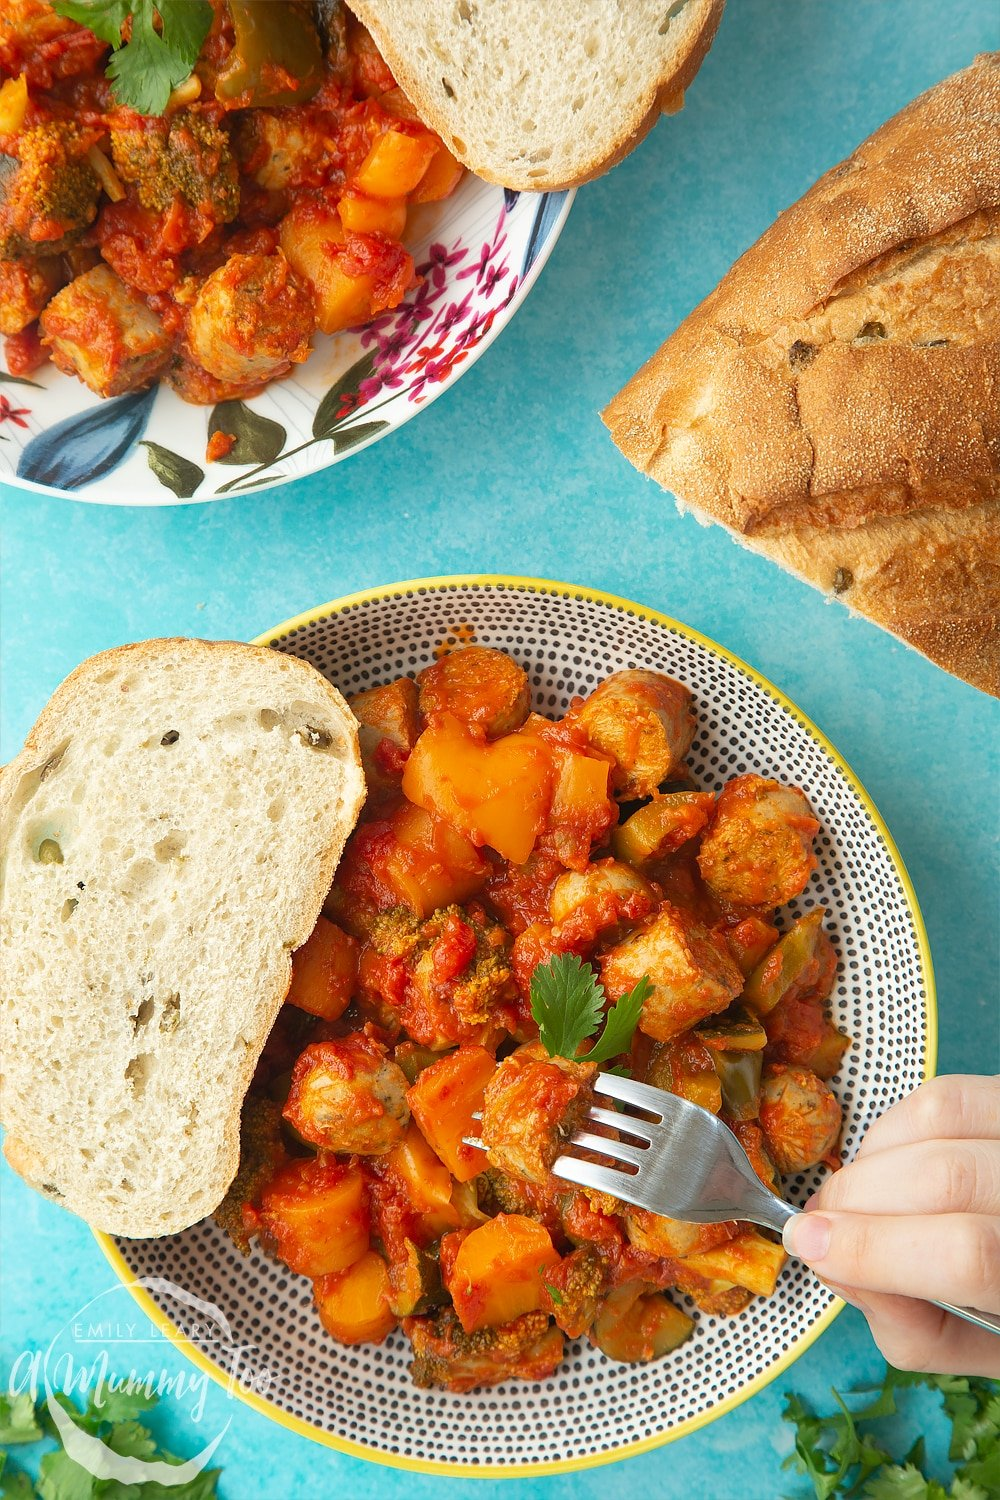 Overhead shot of two decorative bowls filled with slow-cooked vegetarian sausage casserole. At the side of the bowls there's a crusty bread roll.